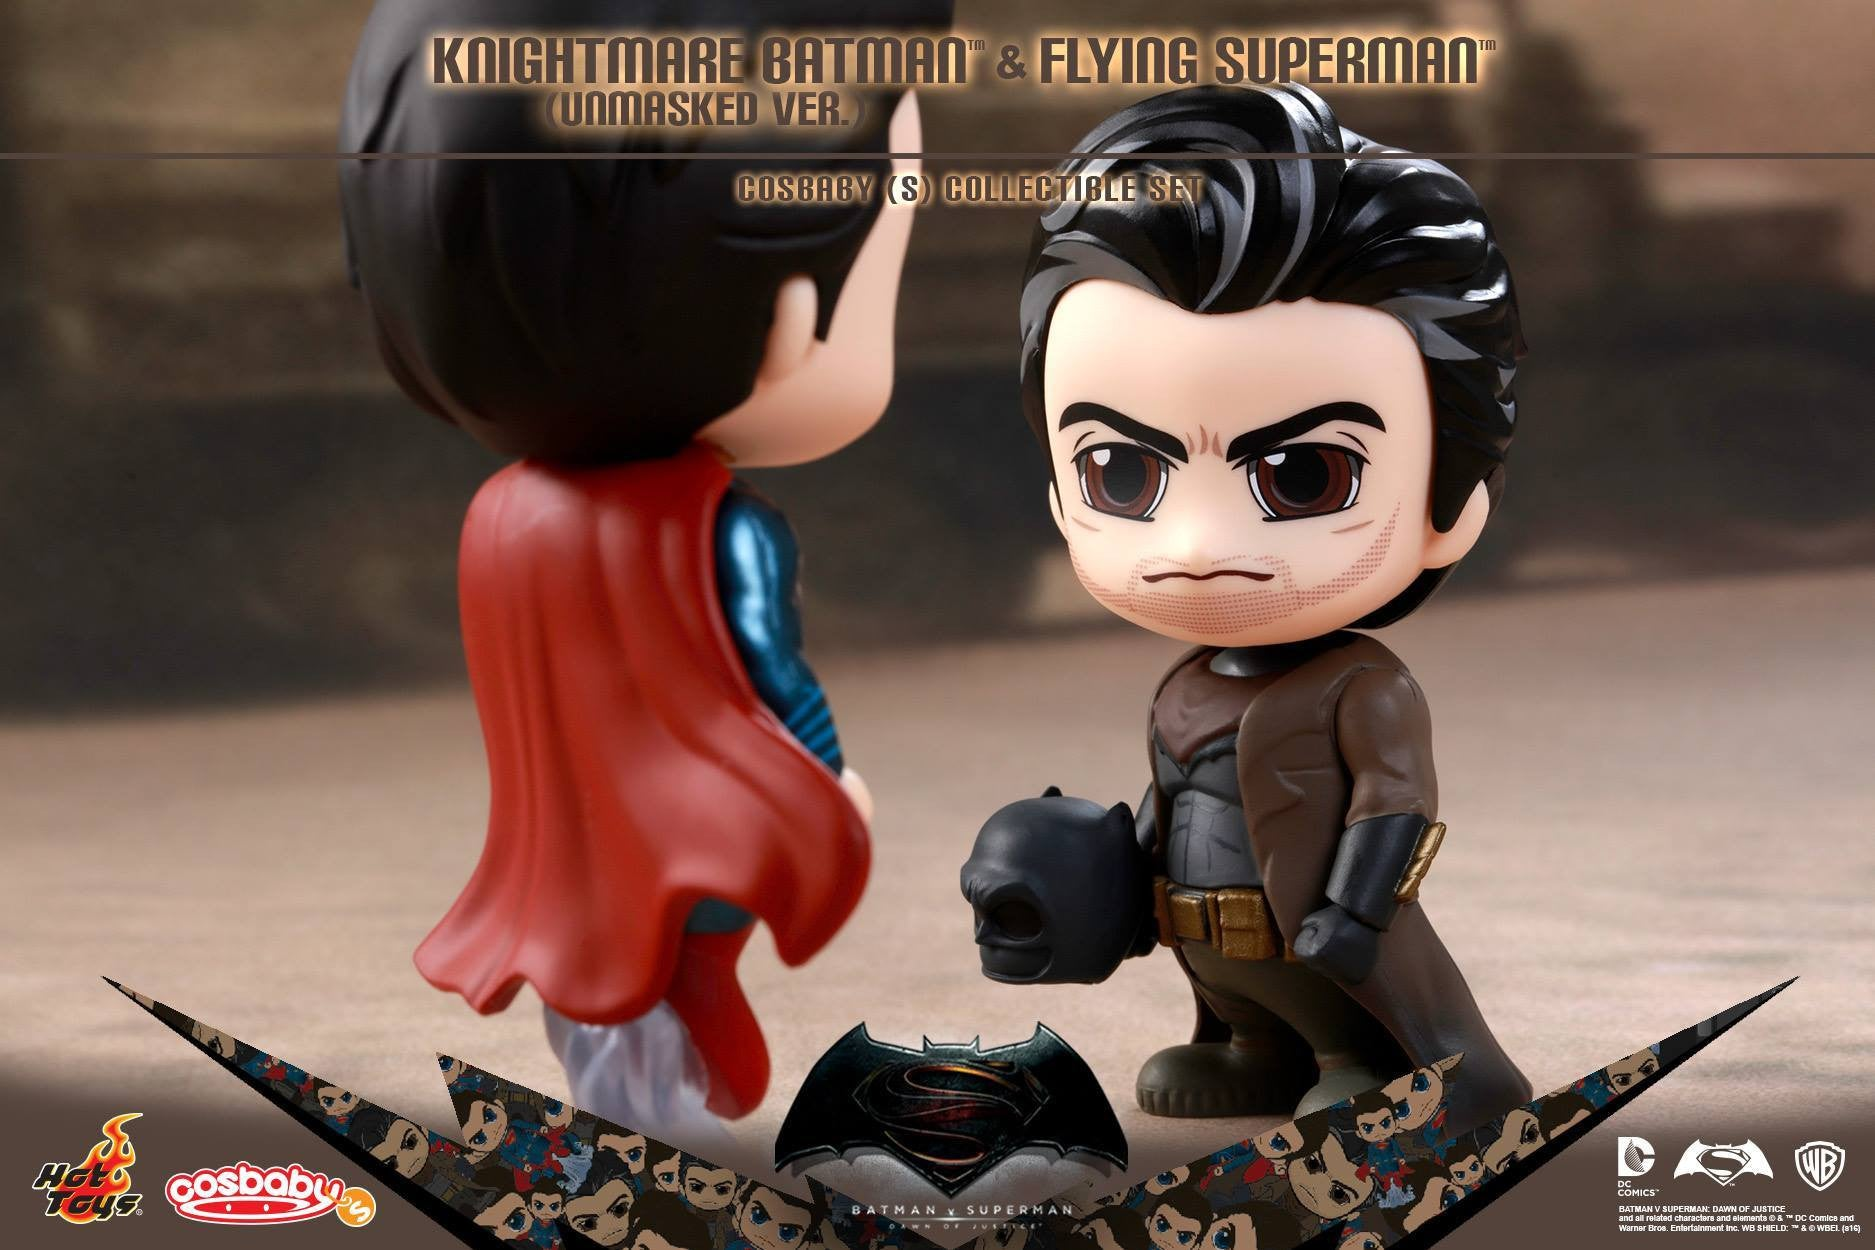 (IN STOCK) Hot Toys - COSB244 - Batman v Superman: Dawn of Justice - Knightmare Batman (Unmasked Version) and Flying Superman Cosbaby (S) Collectible Set - Marvelous Toys - 2